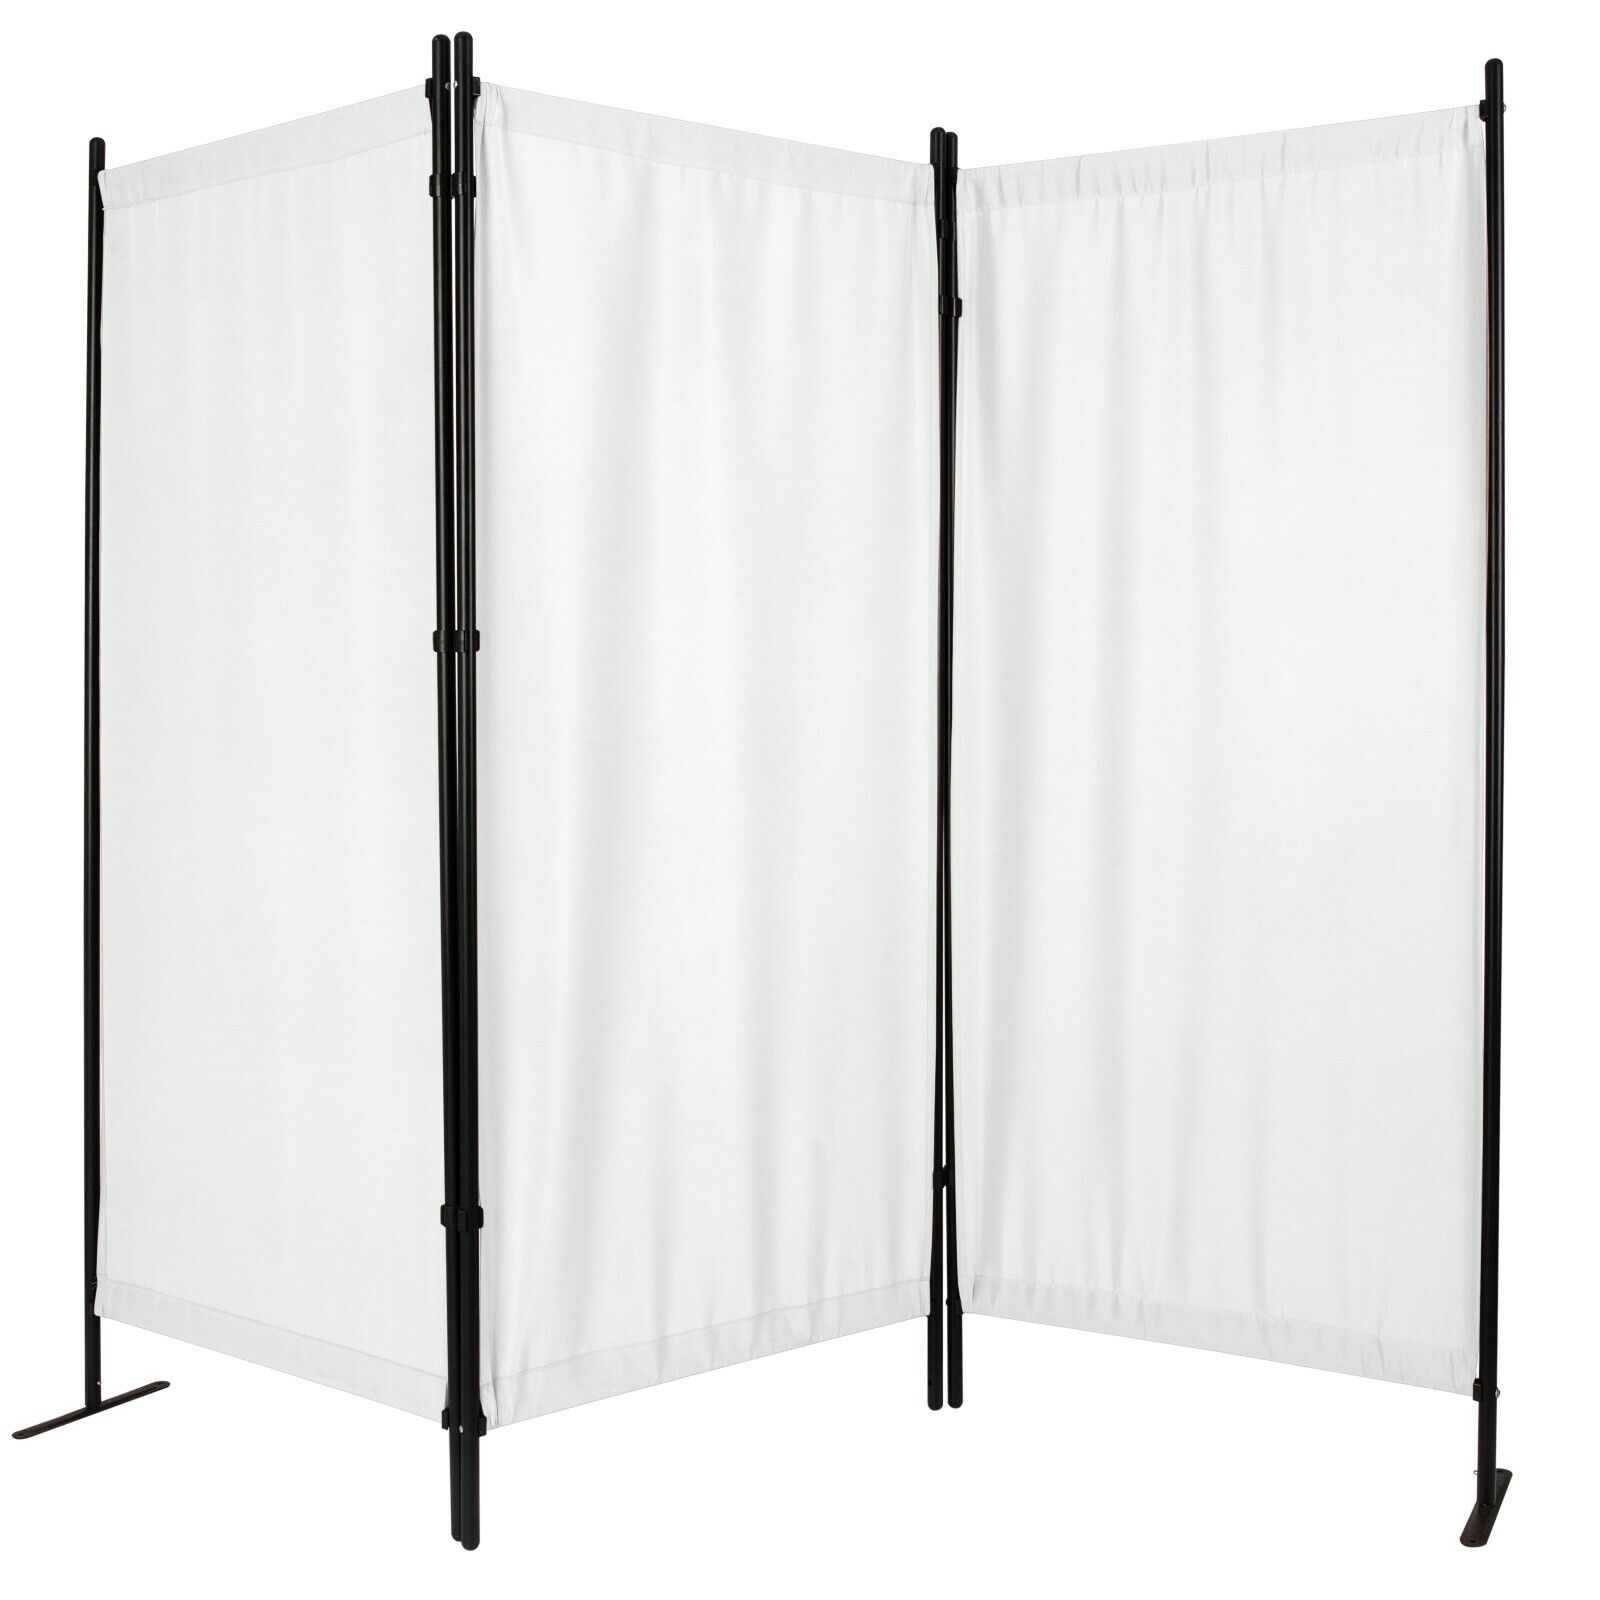 3 panel folding room dividers privacy screen